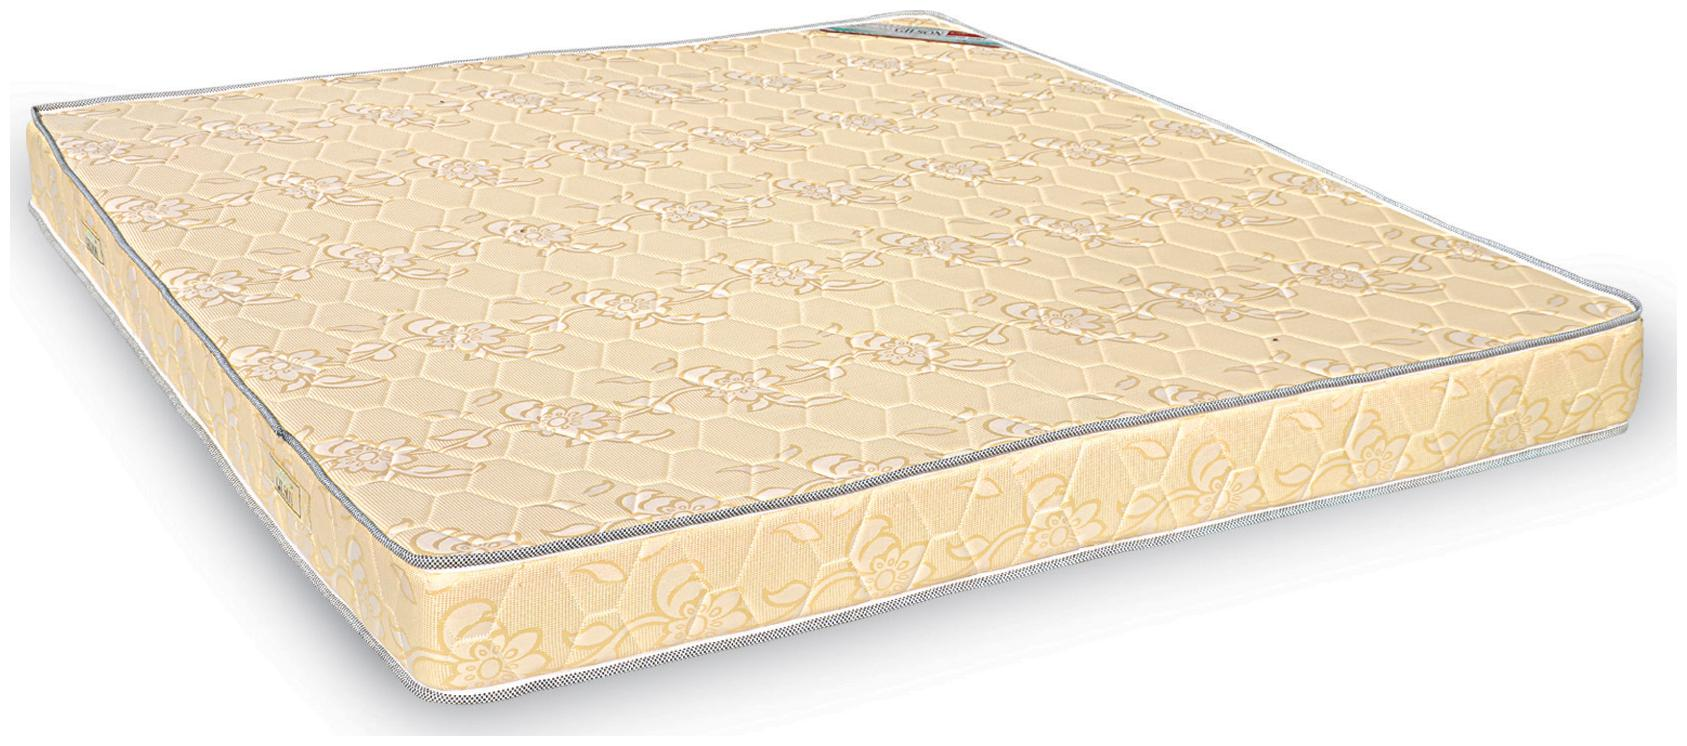 Gilson 6 inch Spring Double Size Mattress by Gilson Mattresses